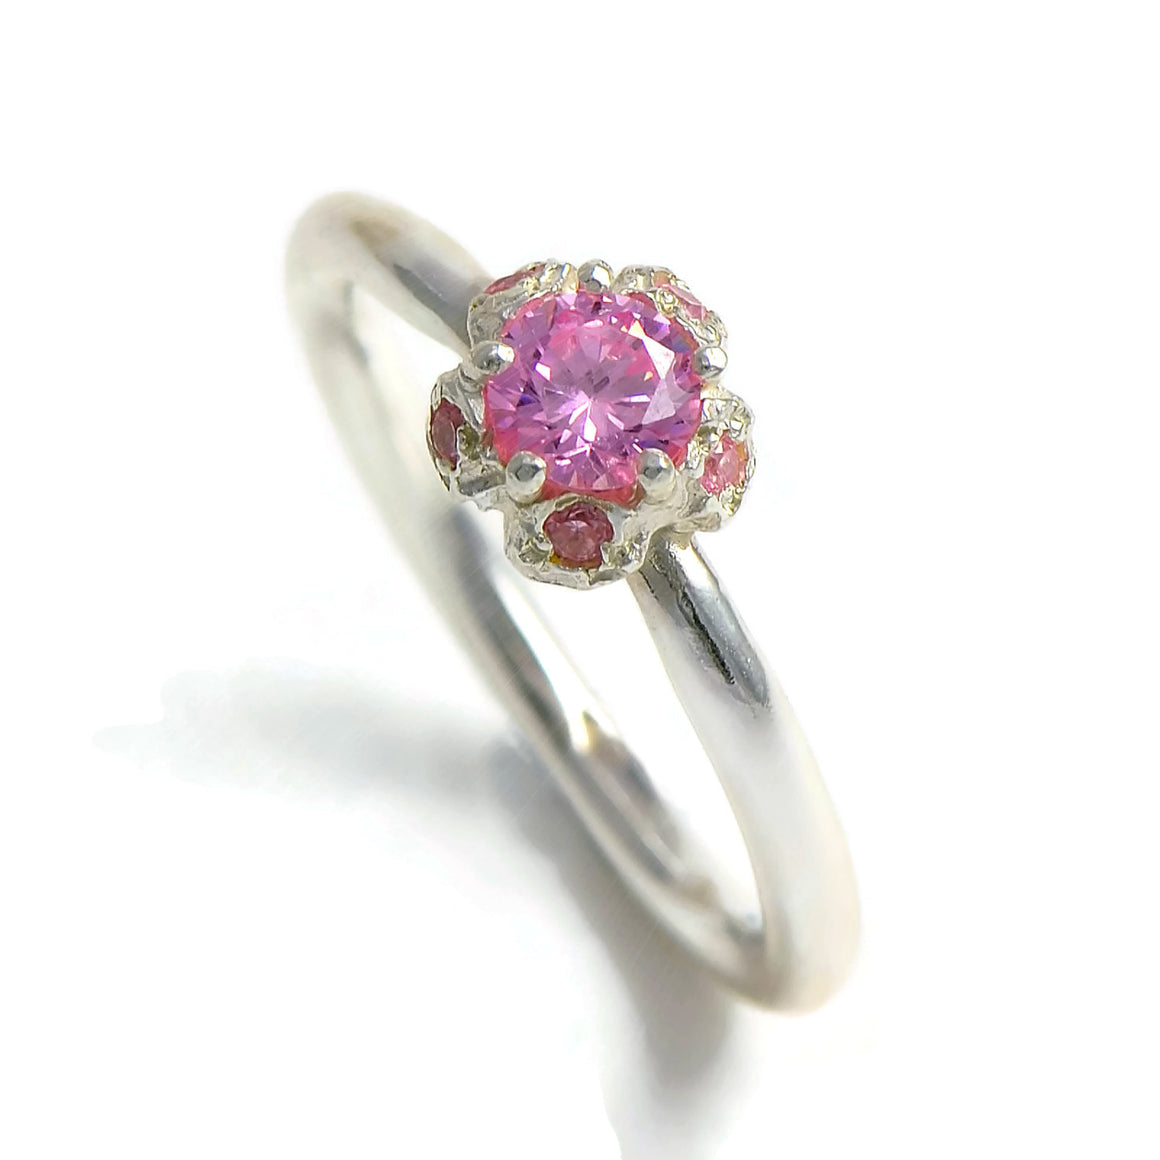 Pink tourmaline solitary wedding ring